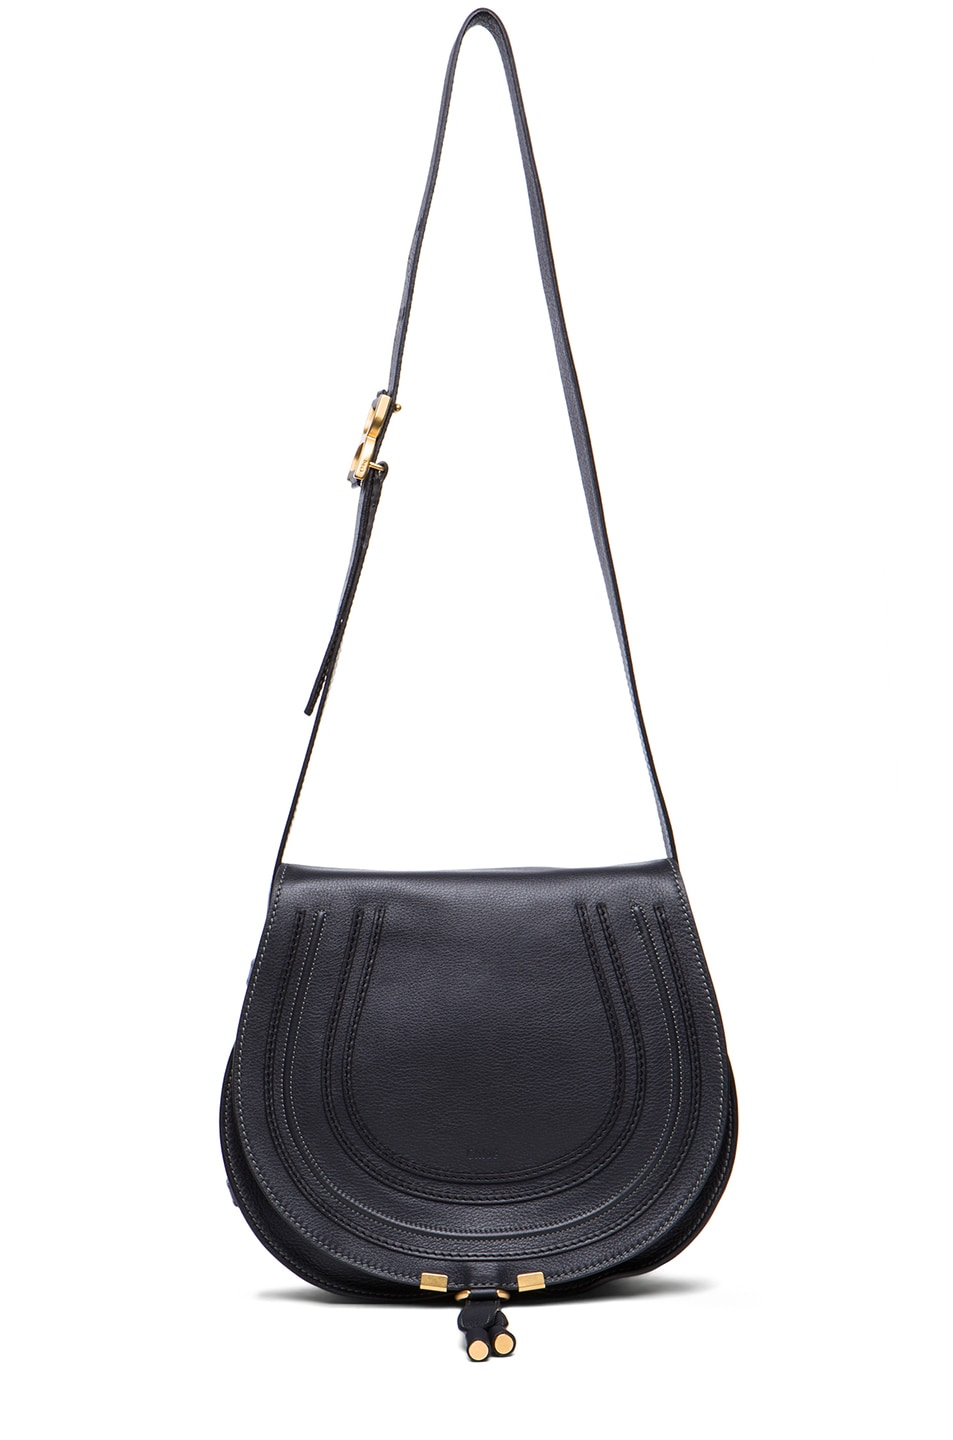 Image 5 of Chloe Medium Marcie Satchel in Black Bat